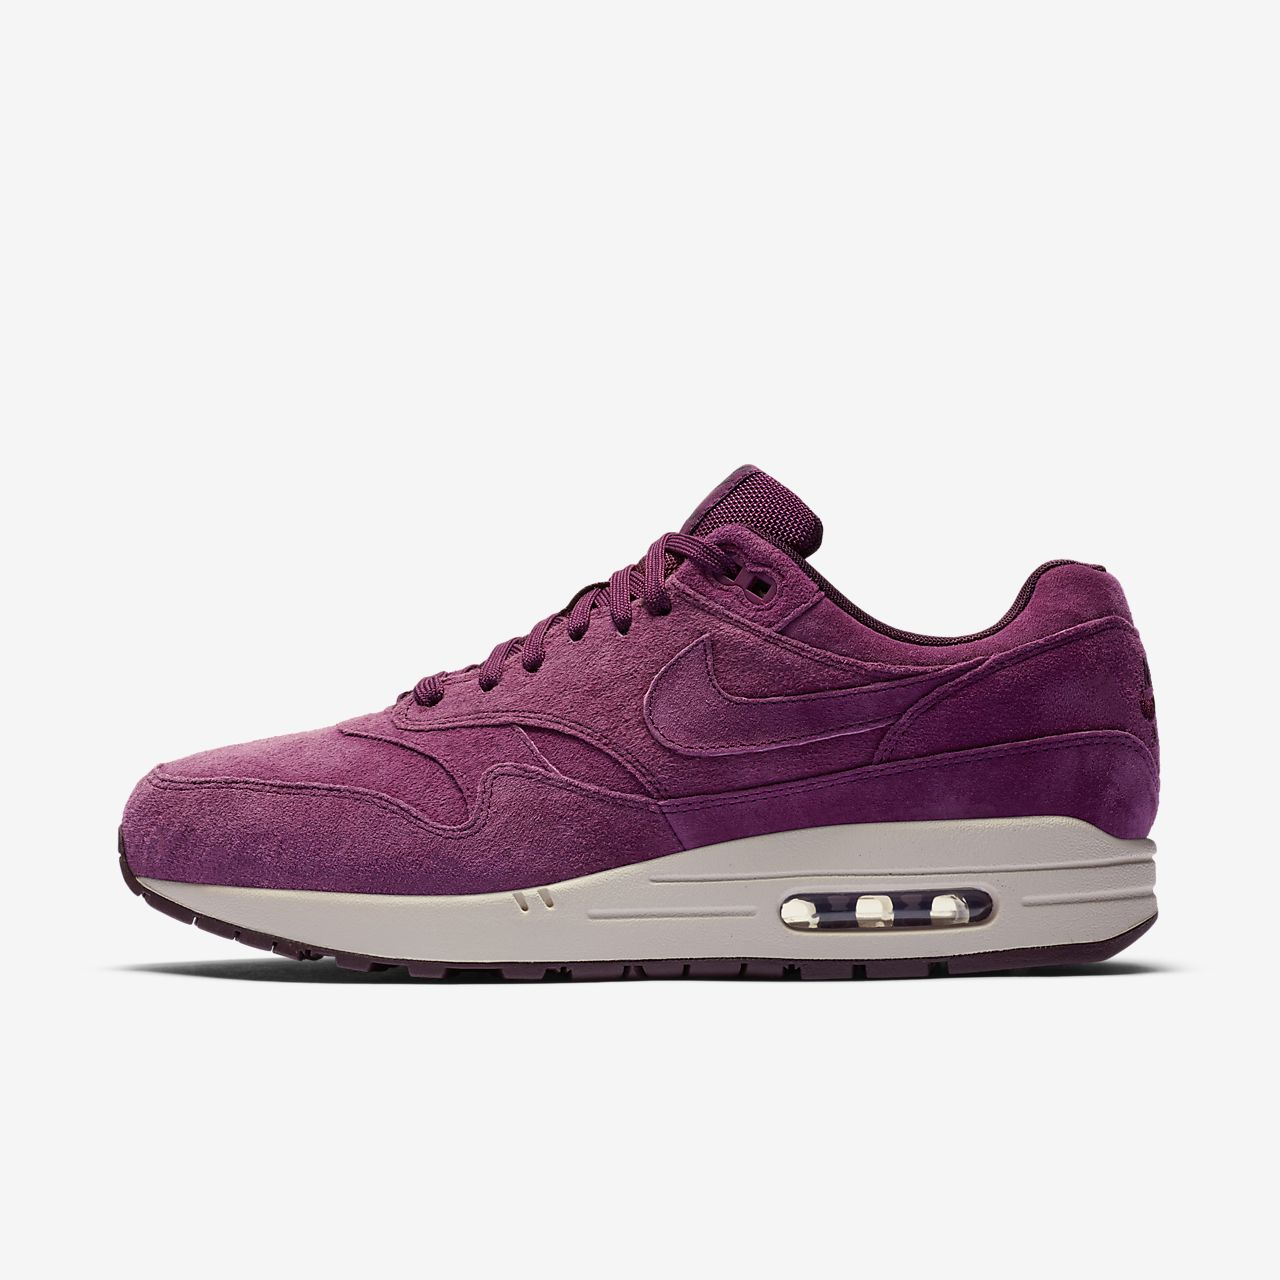 pretty nice 000a1 cbc1c ... Nike Air Max 1 Premium Men s Shoe